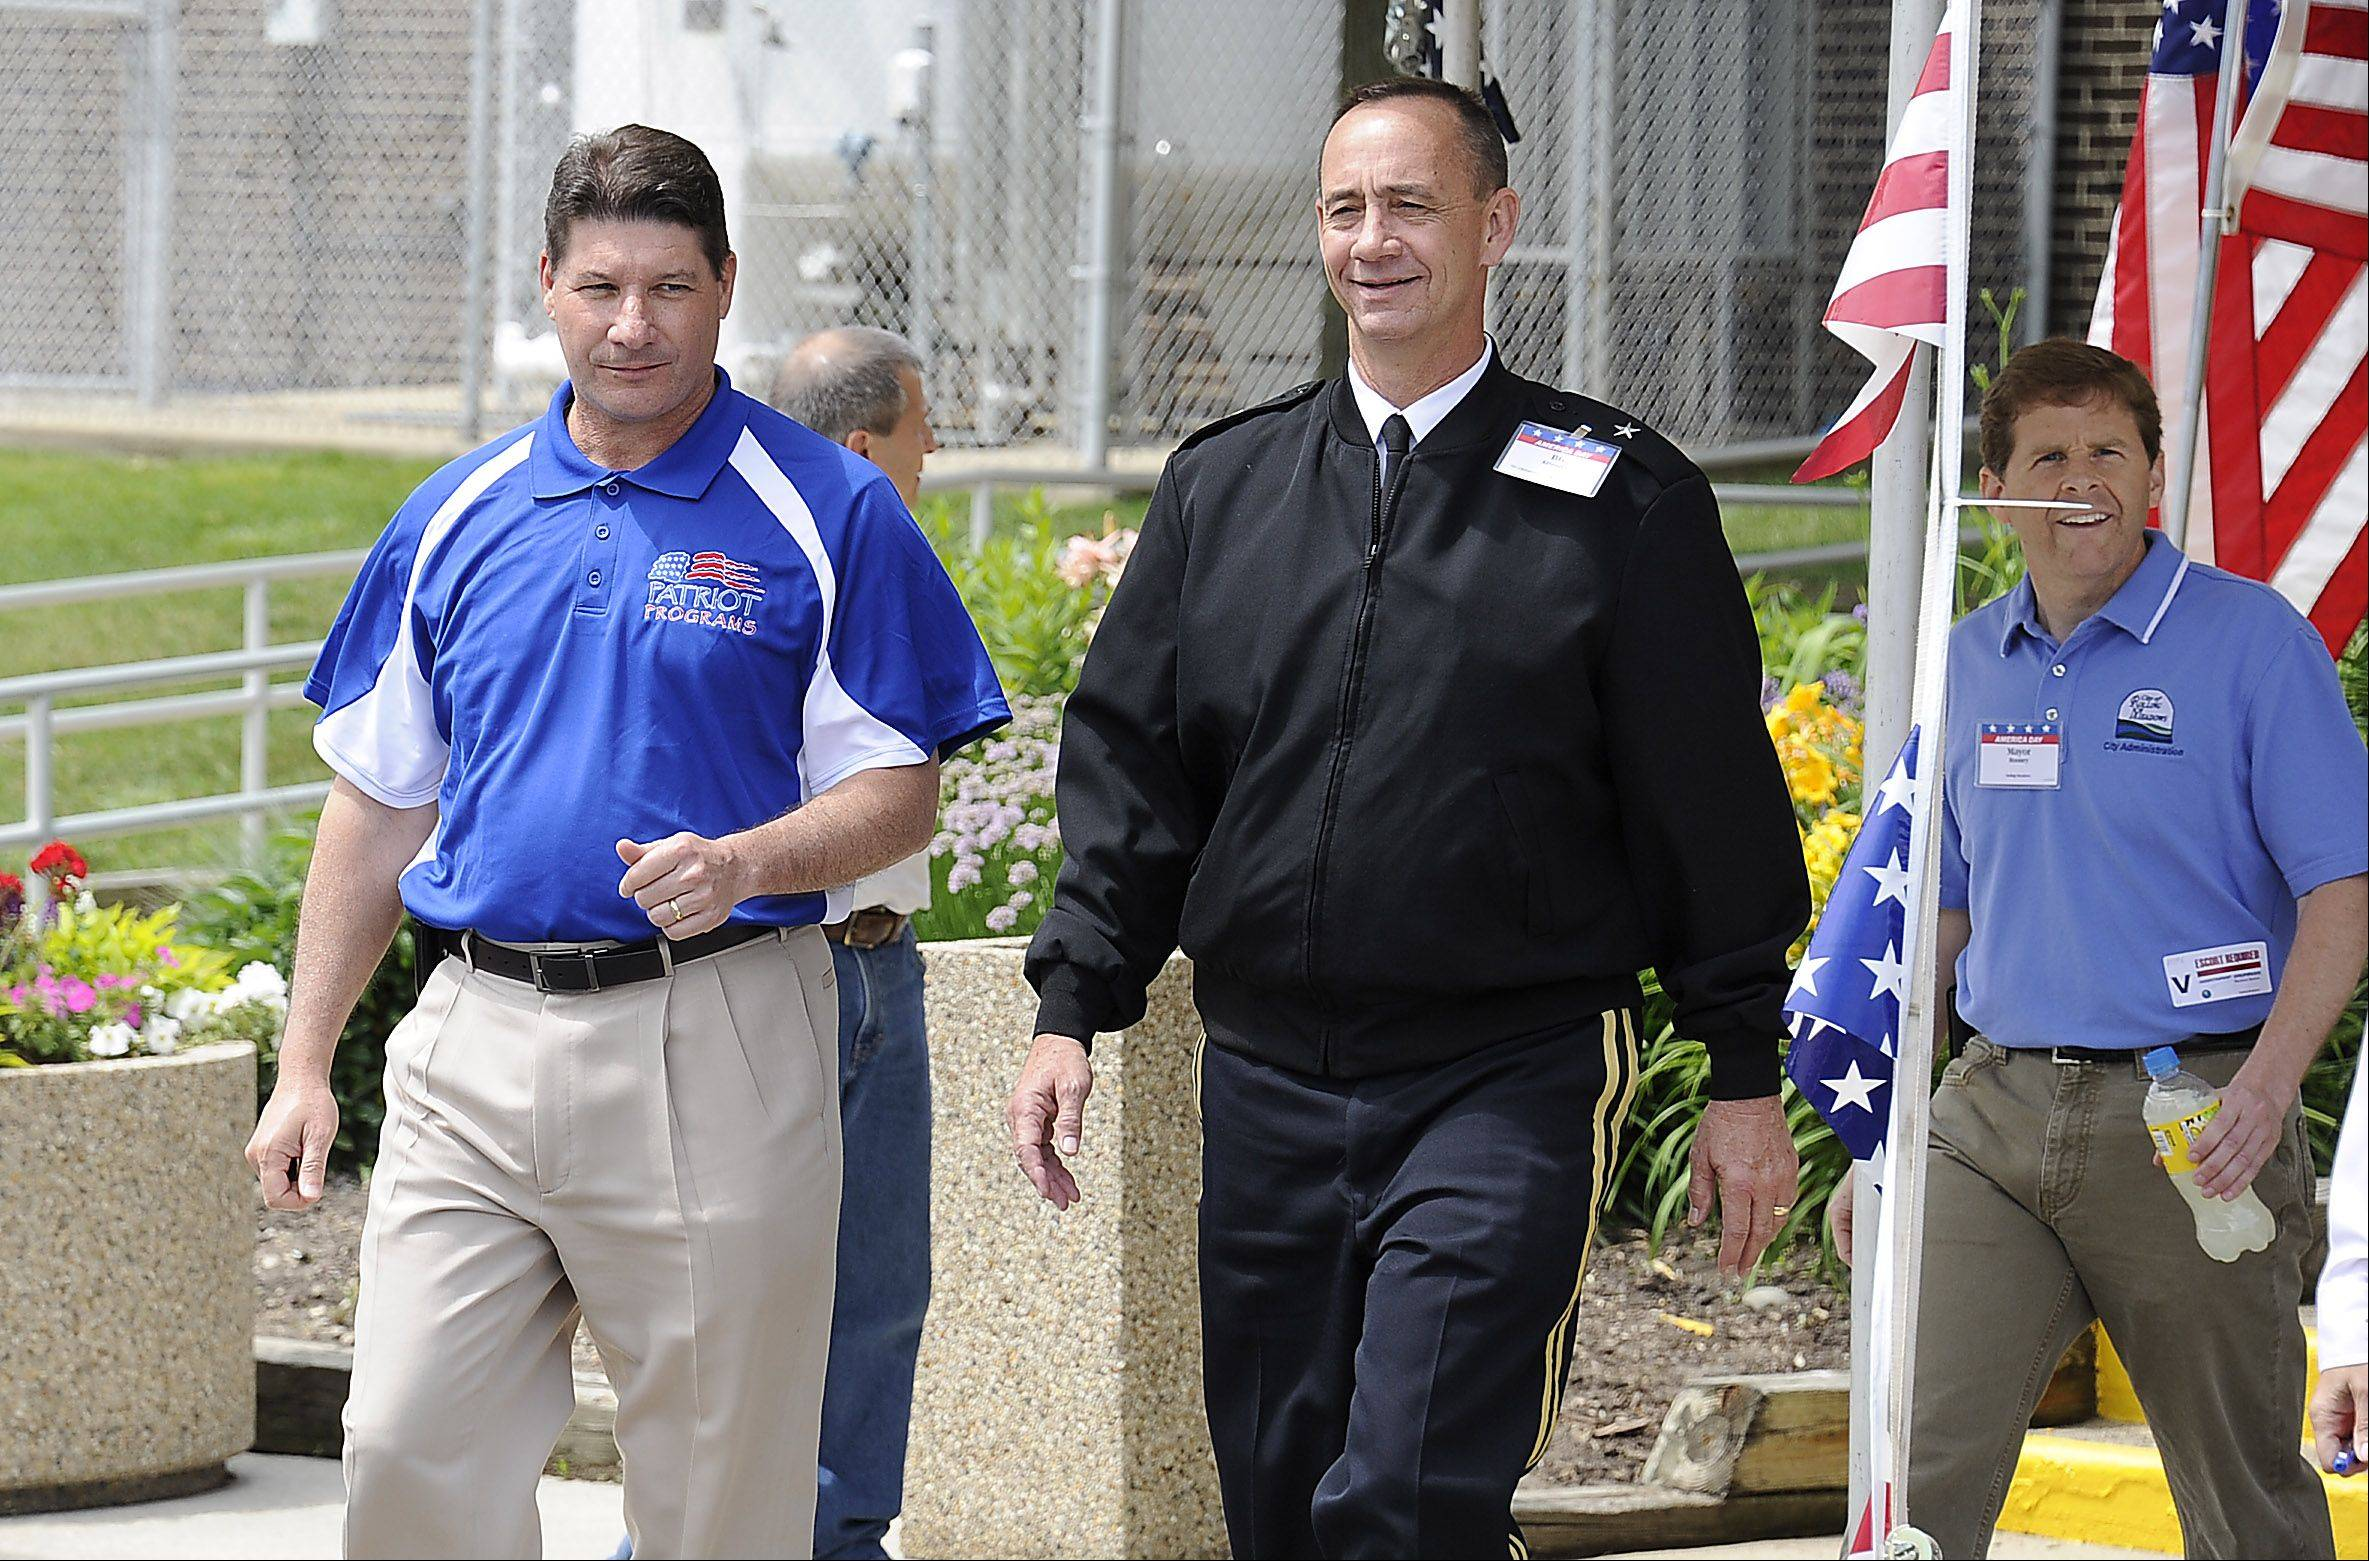 From left, Jeff Palombo, Northrop Grumman Sector Vice President, Gen. Daniel Krumrei and Rolling Meadows Mayor Tom Rooney enter the celebration.